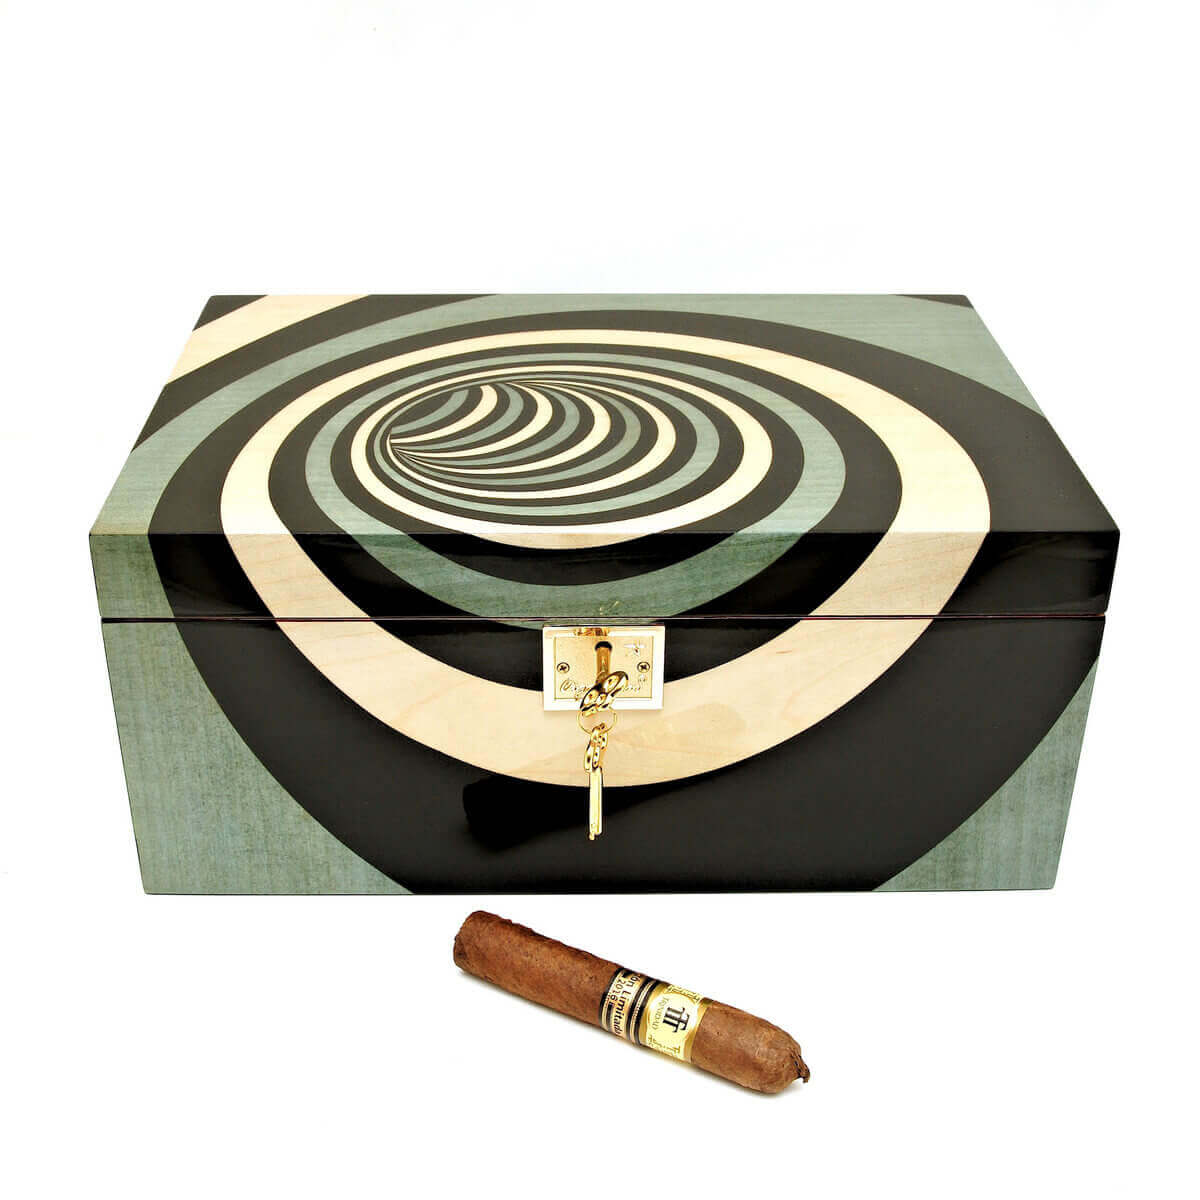 CHAVA BLU 120 Cigar Humidor Limited Edition RELEASE.